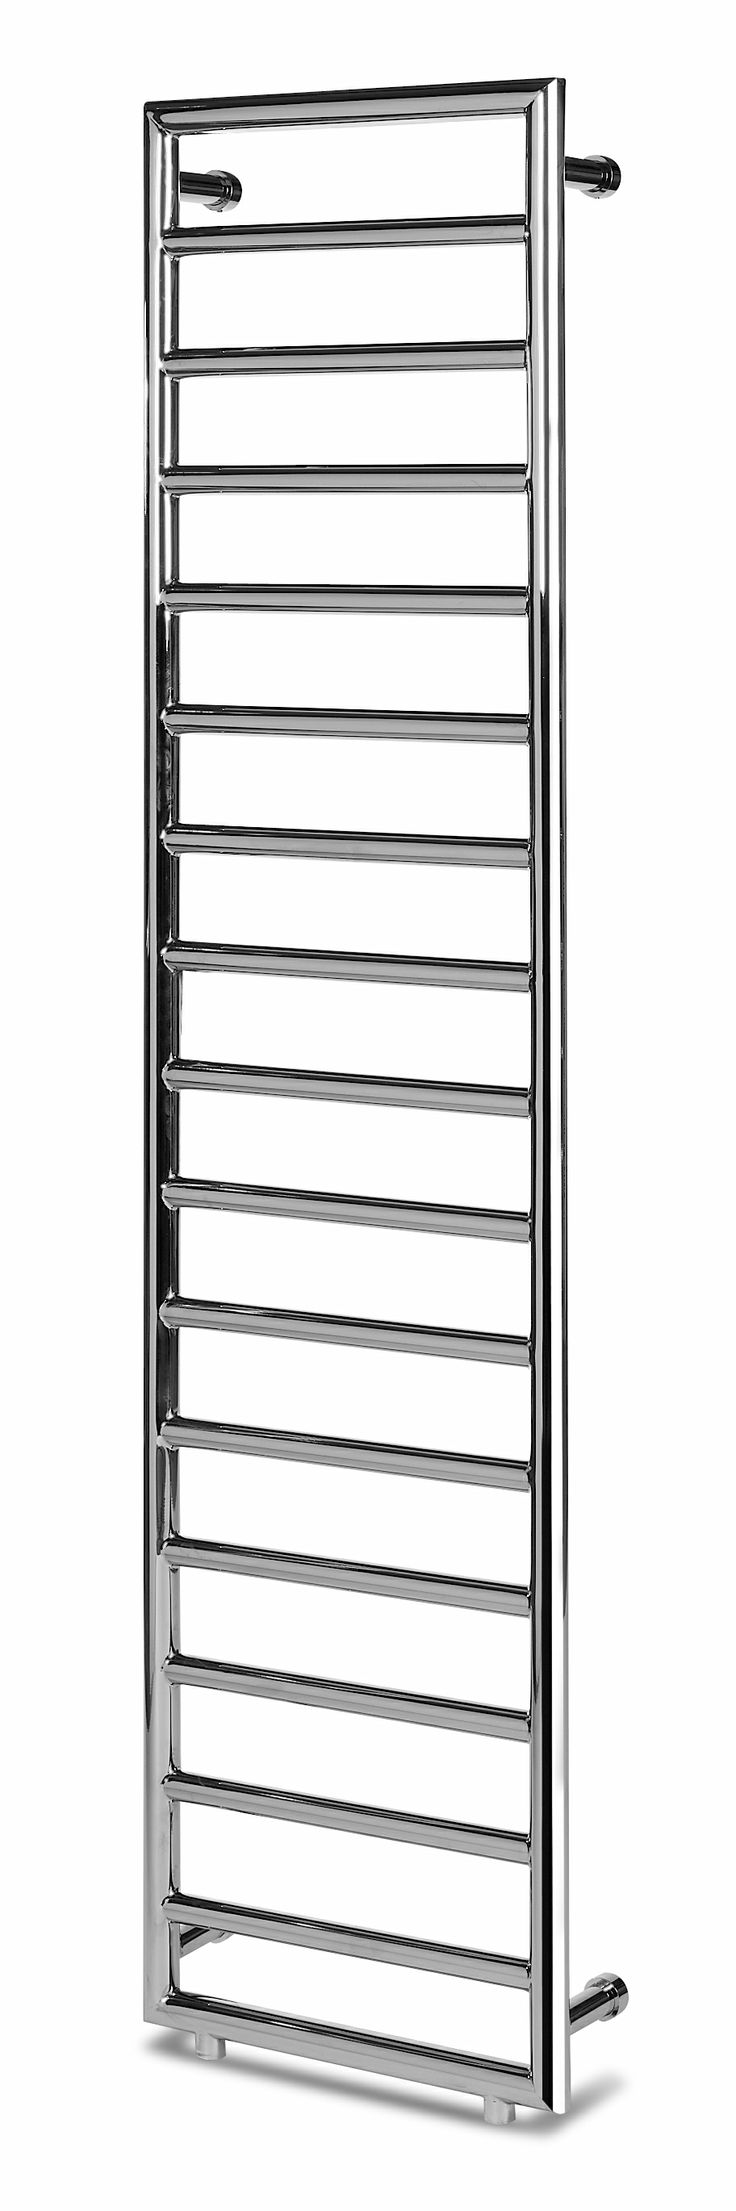 Modern towel rails available in hundreds of designs from Simply #Radiators.